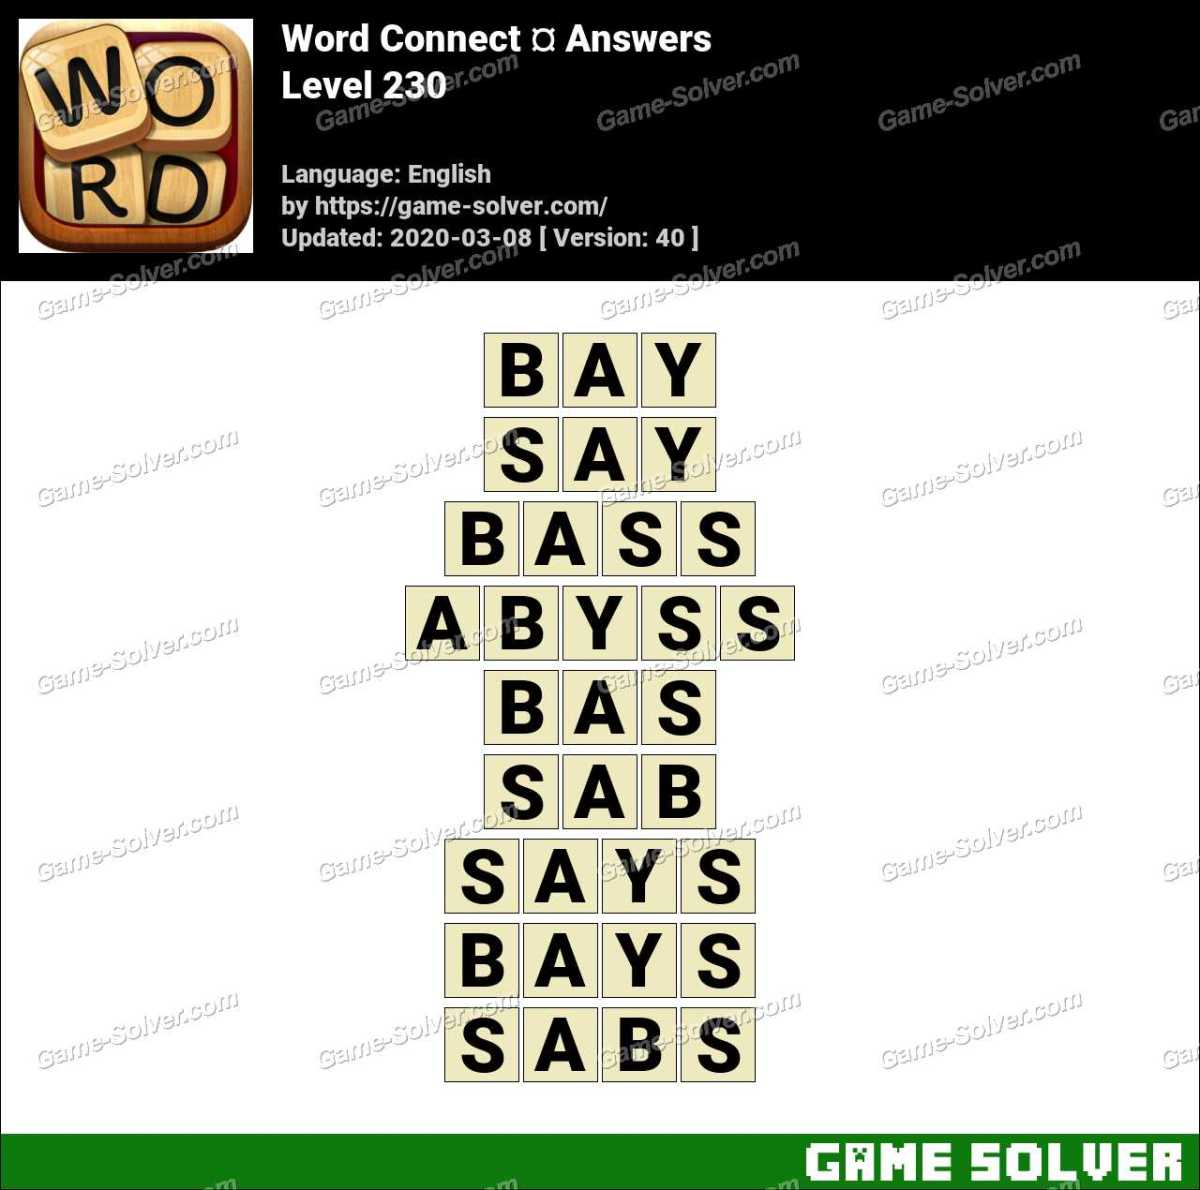 Word Connect Level 230 Answers